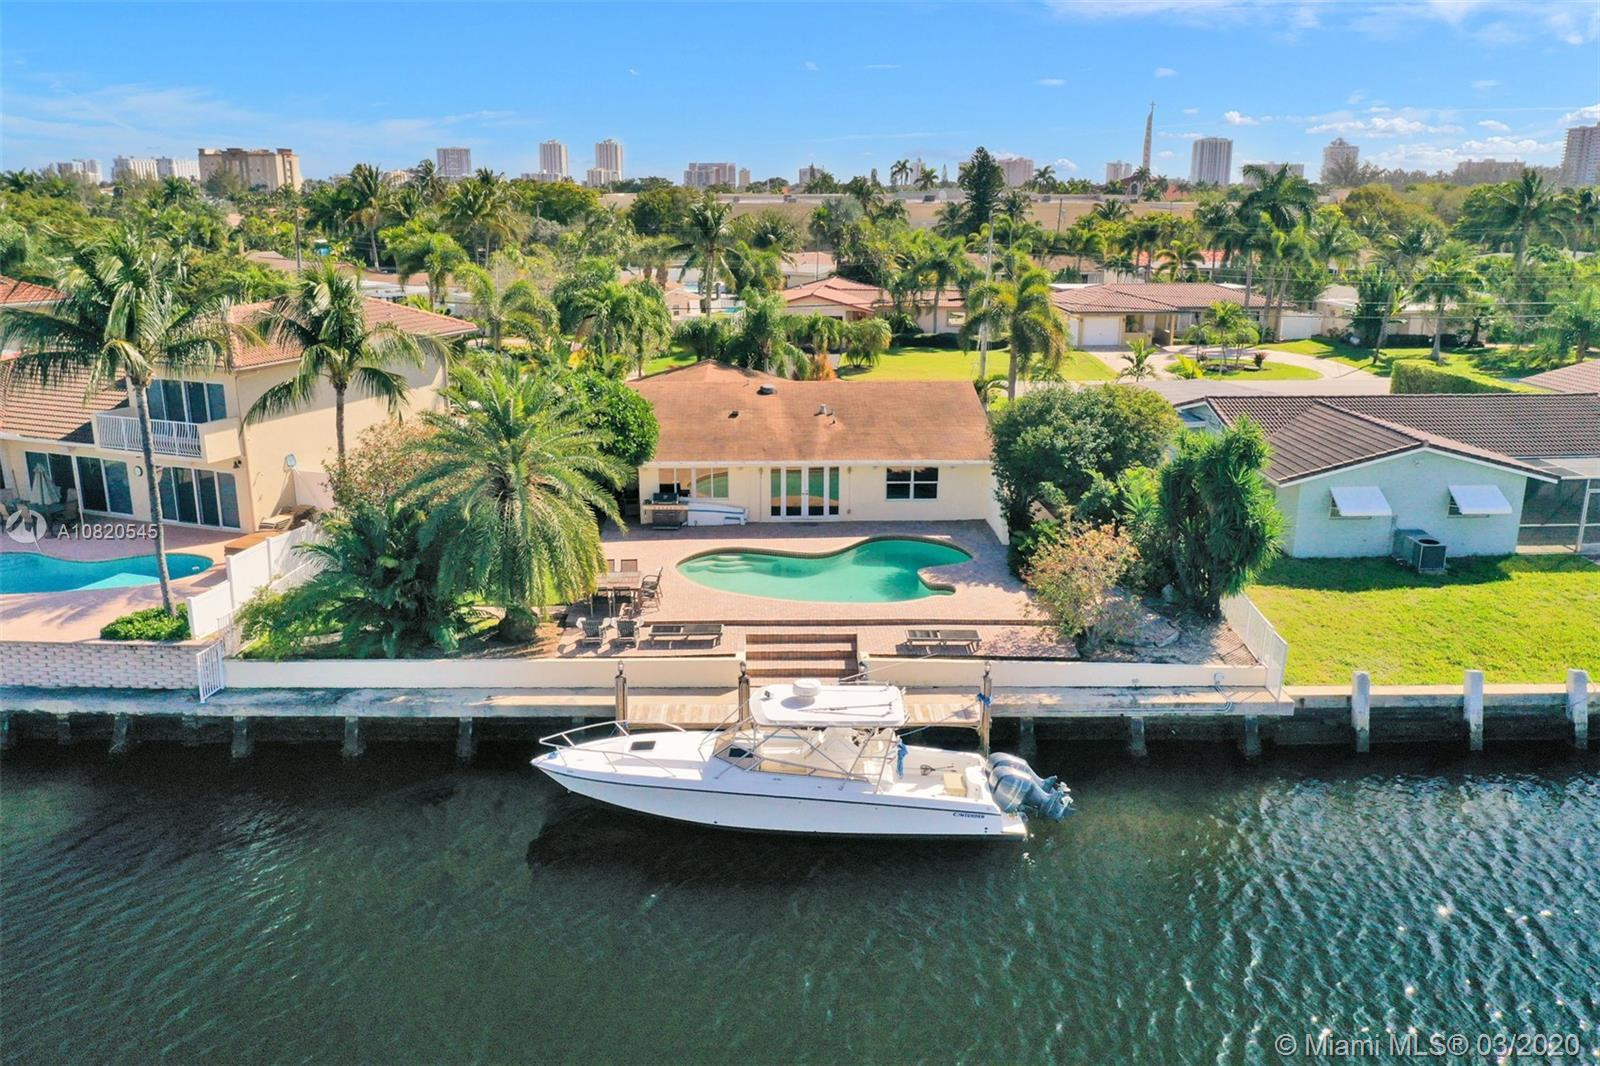 Amazing 150ft wide water views, one of the widest canals in Broward County. Totally remodeled house